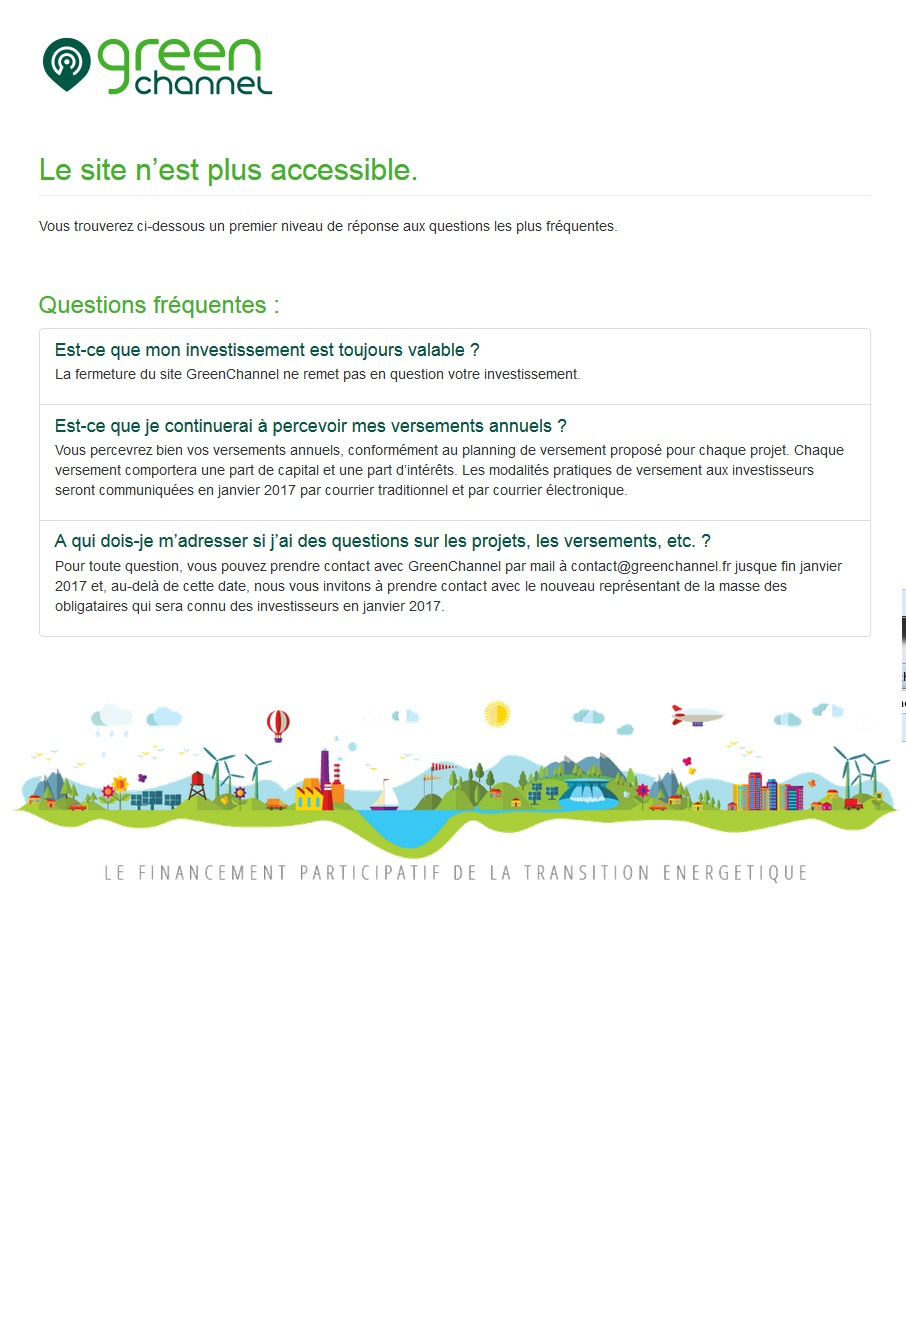 green-channel-investissement-crowdfunding-ecologique-ferme